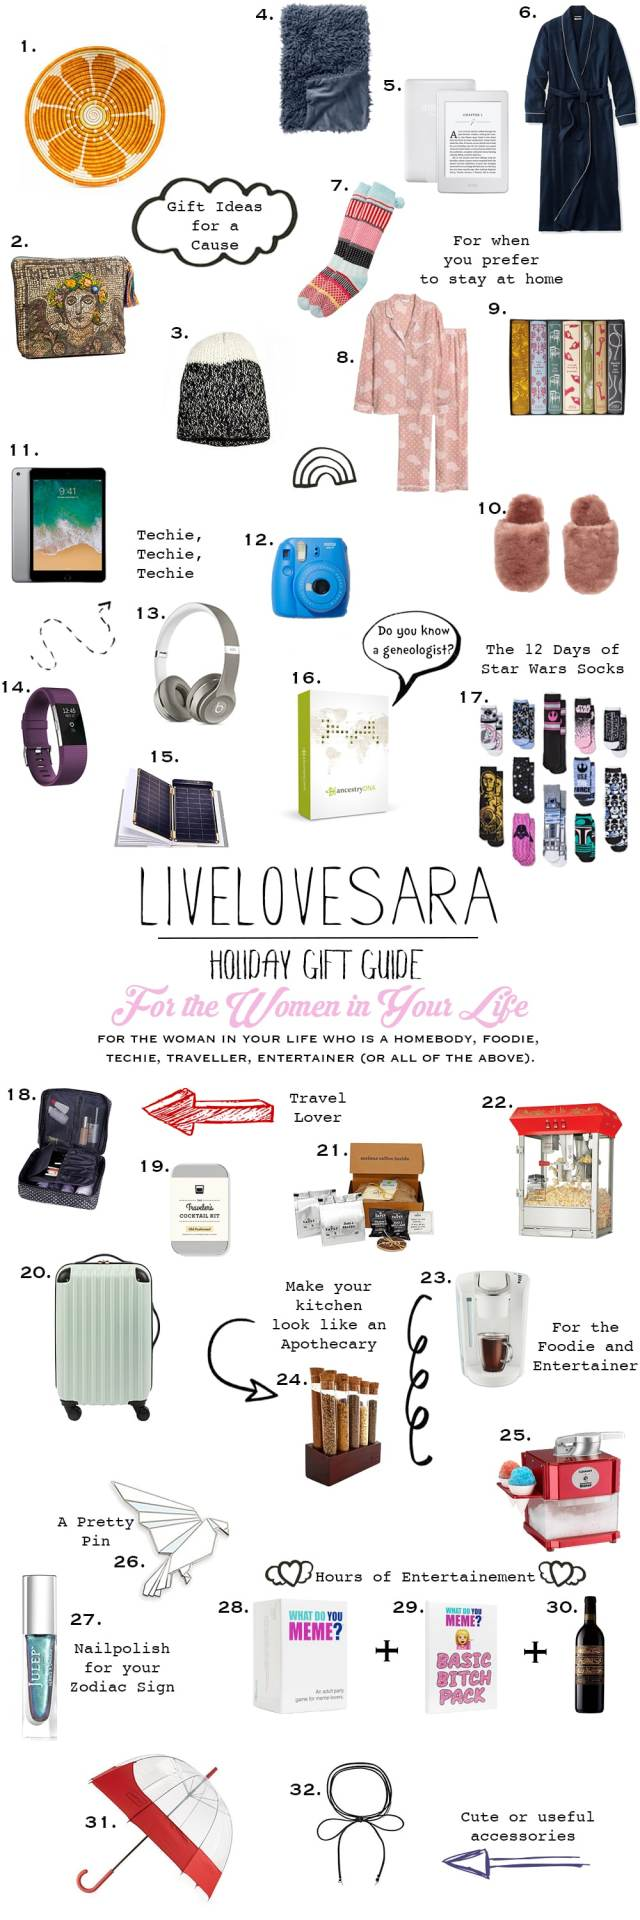 2017 Holiday gift guide for women #2017giftguide #giftguideforher #giftguides #holiday2017 #livelovesara